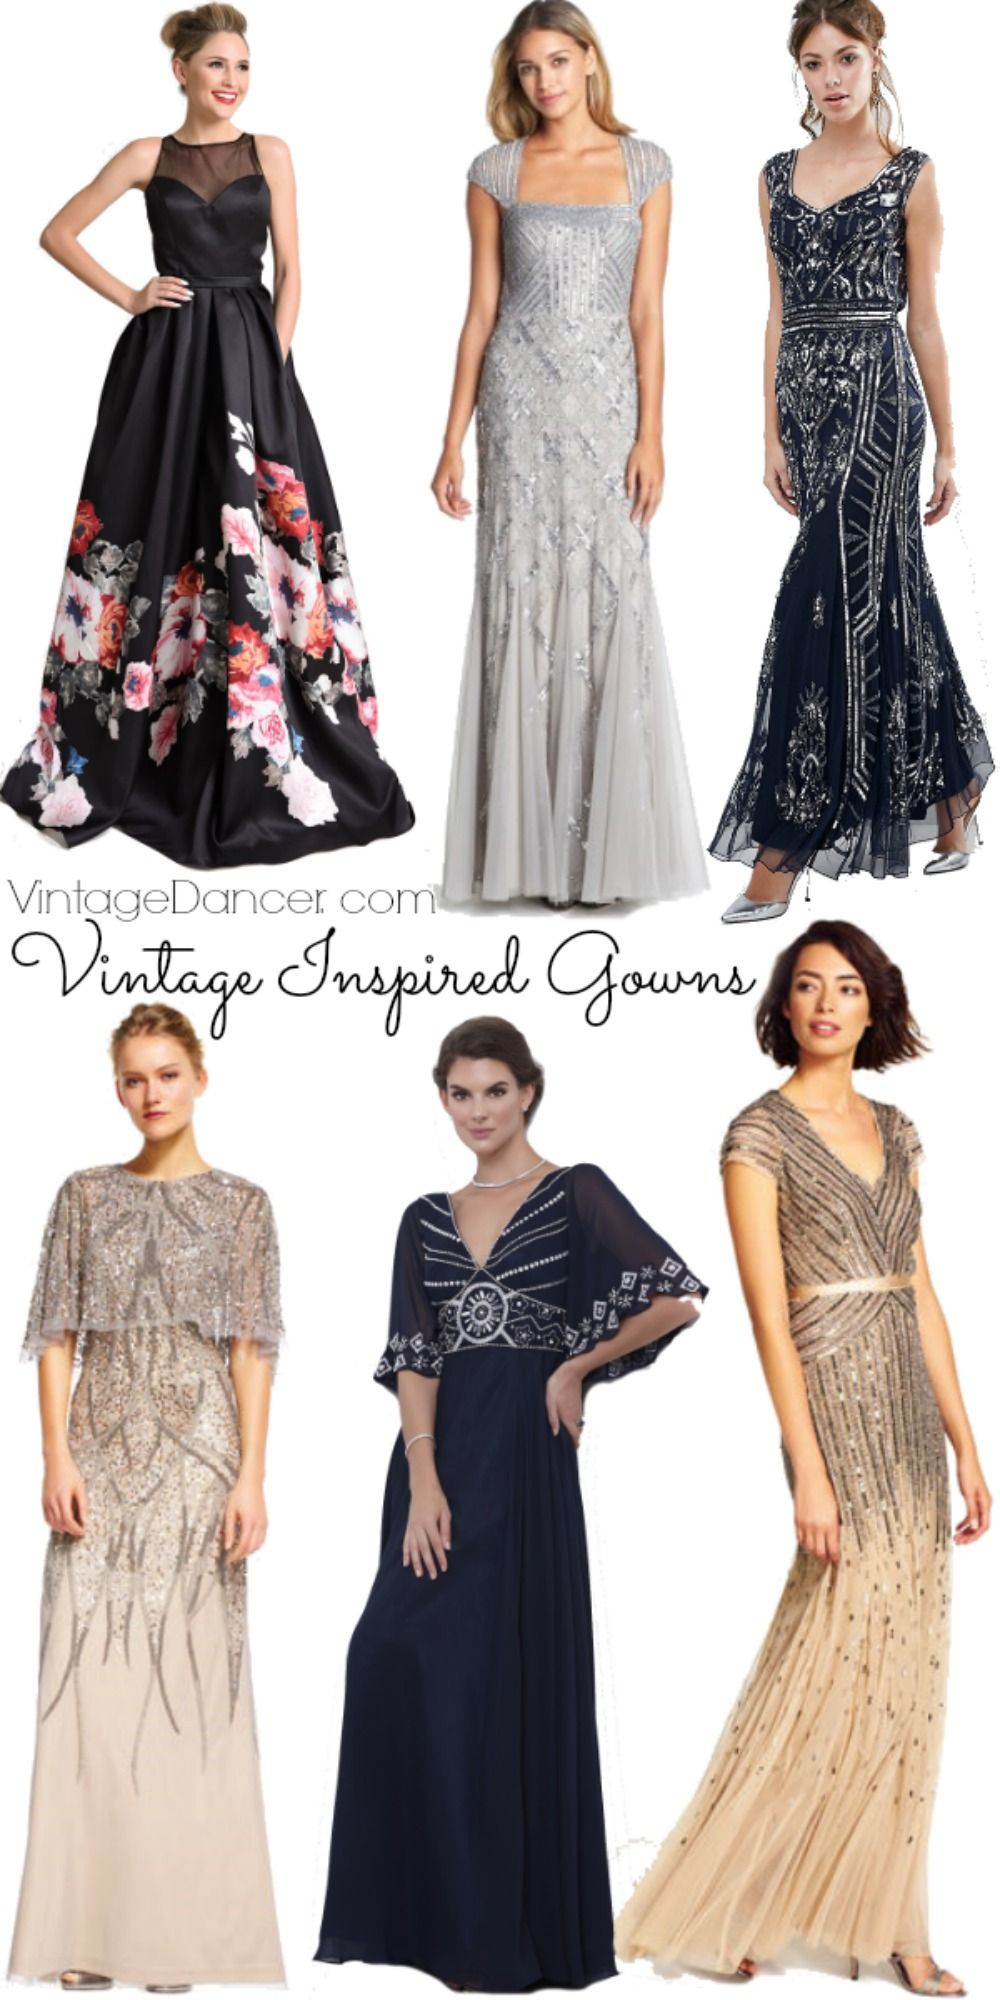 1940s Hollywood Evening Gowns: Vintage Inspired Evening Dresses, Gowns And Formal Wear